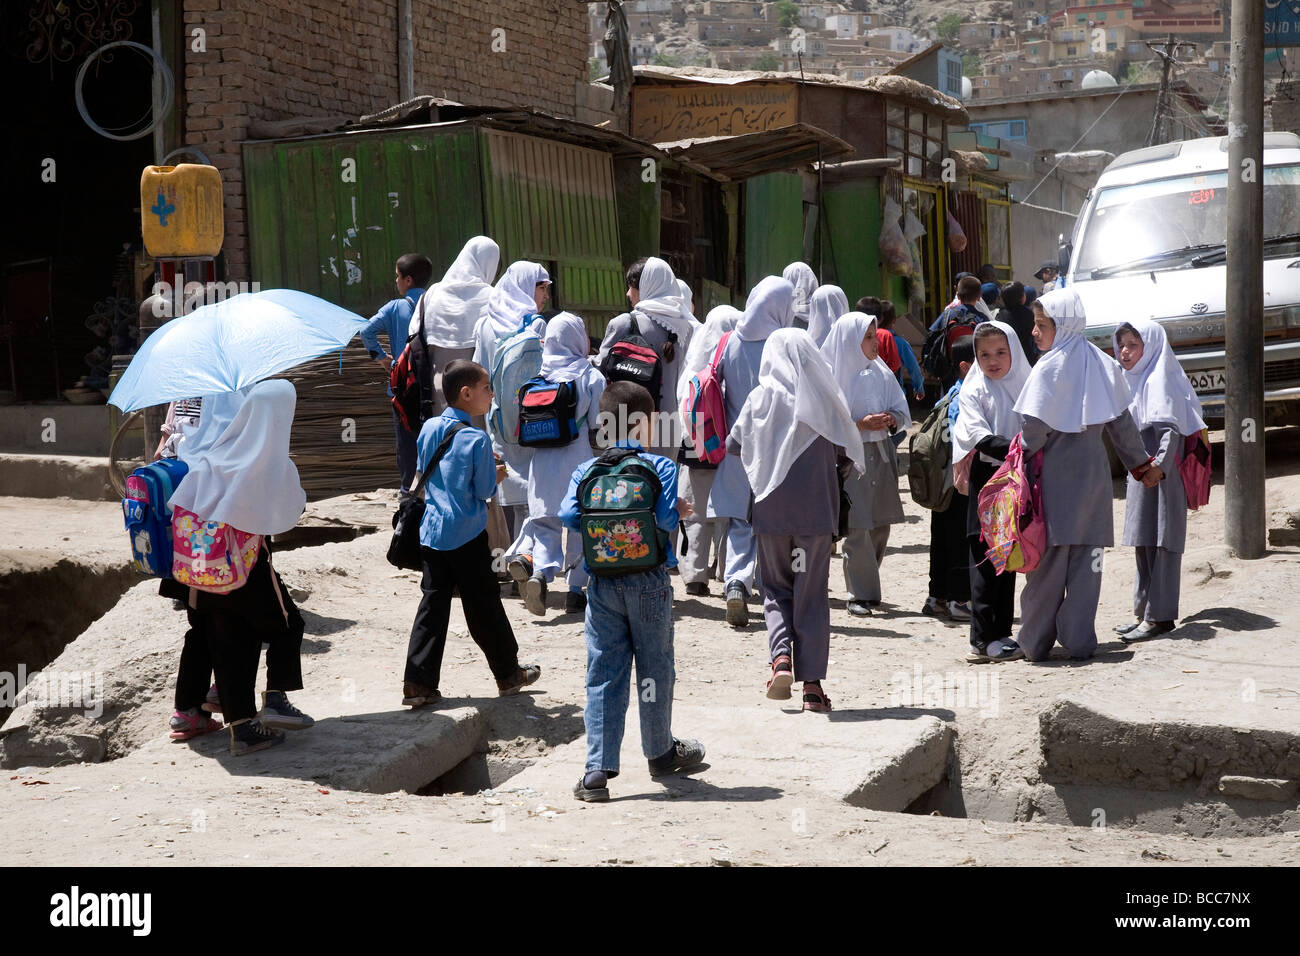 Schoolchildren--veiled girls and bareheaded boys--in a Kabul city street, Afghanistan - Stock Image